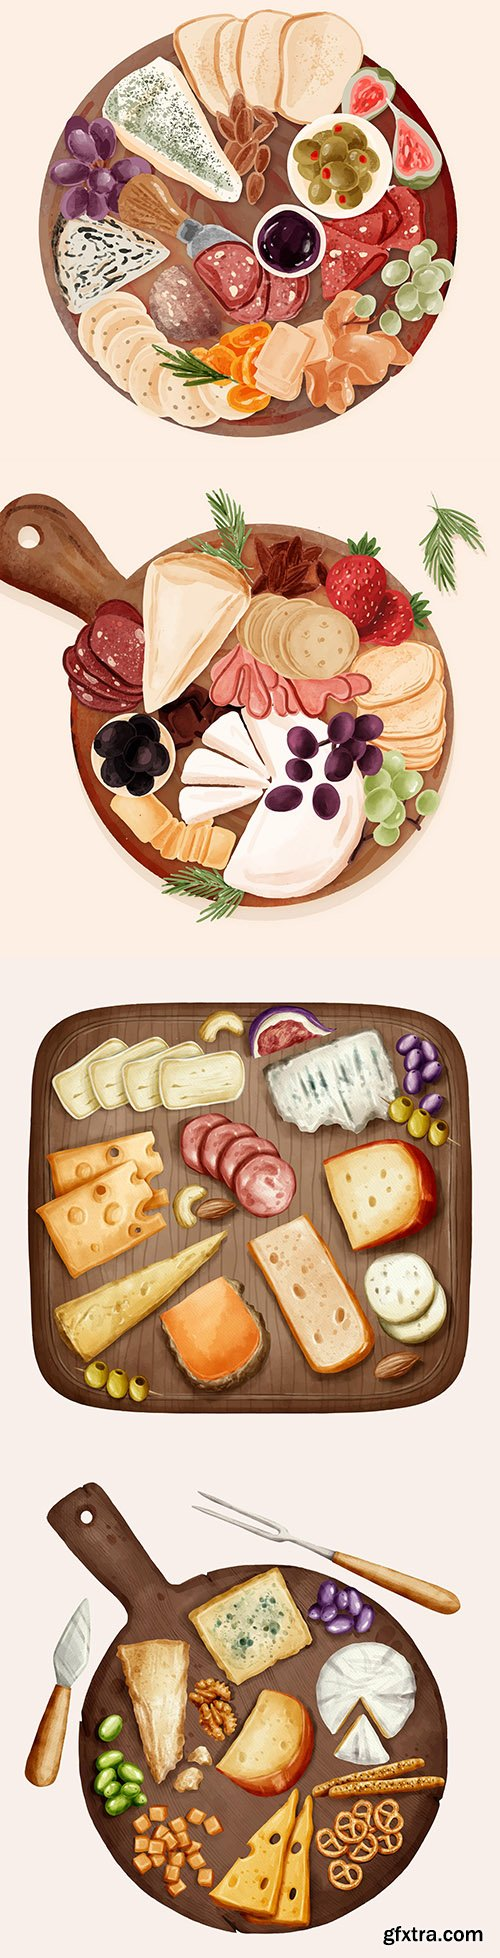 Cutting cheese on wooden board watercolor illustration